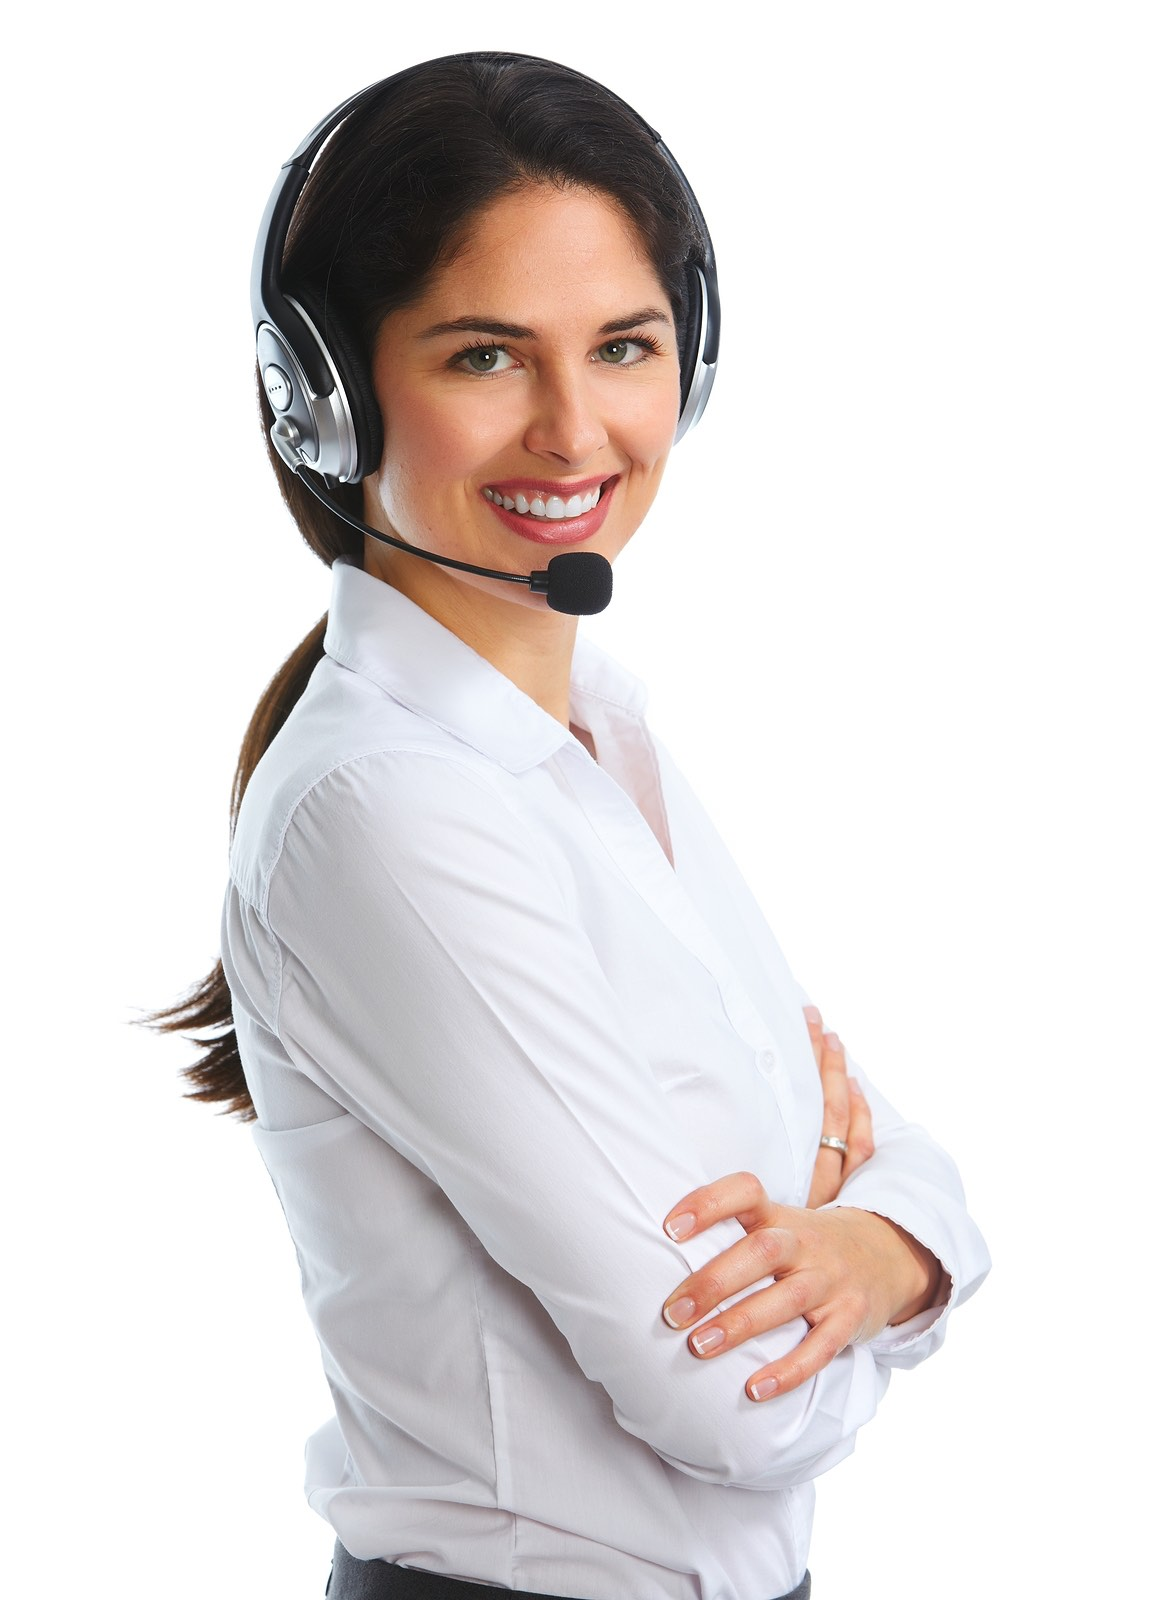 Call Center Operator With Client - Video And Website Design